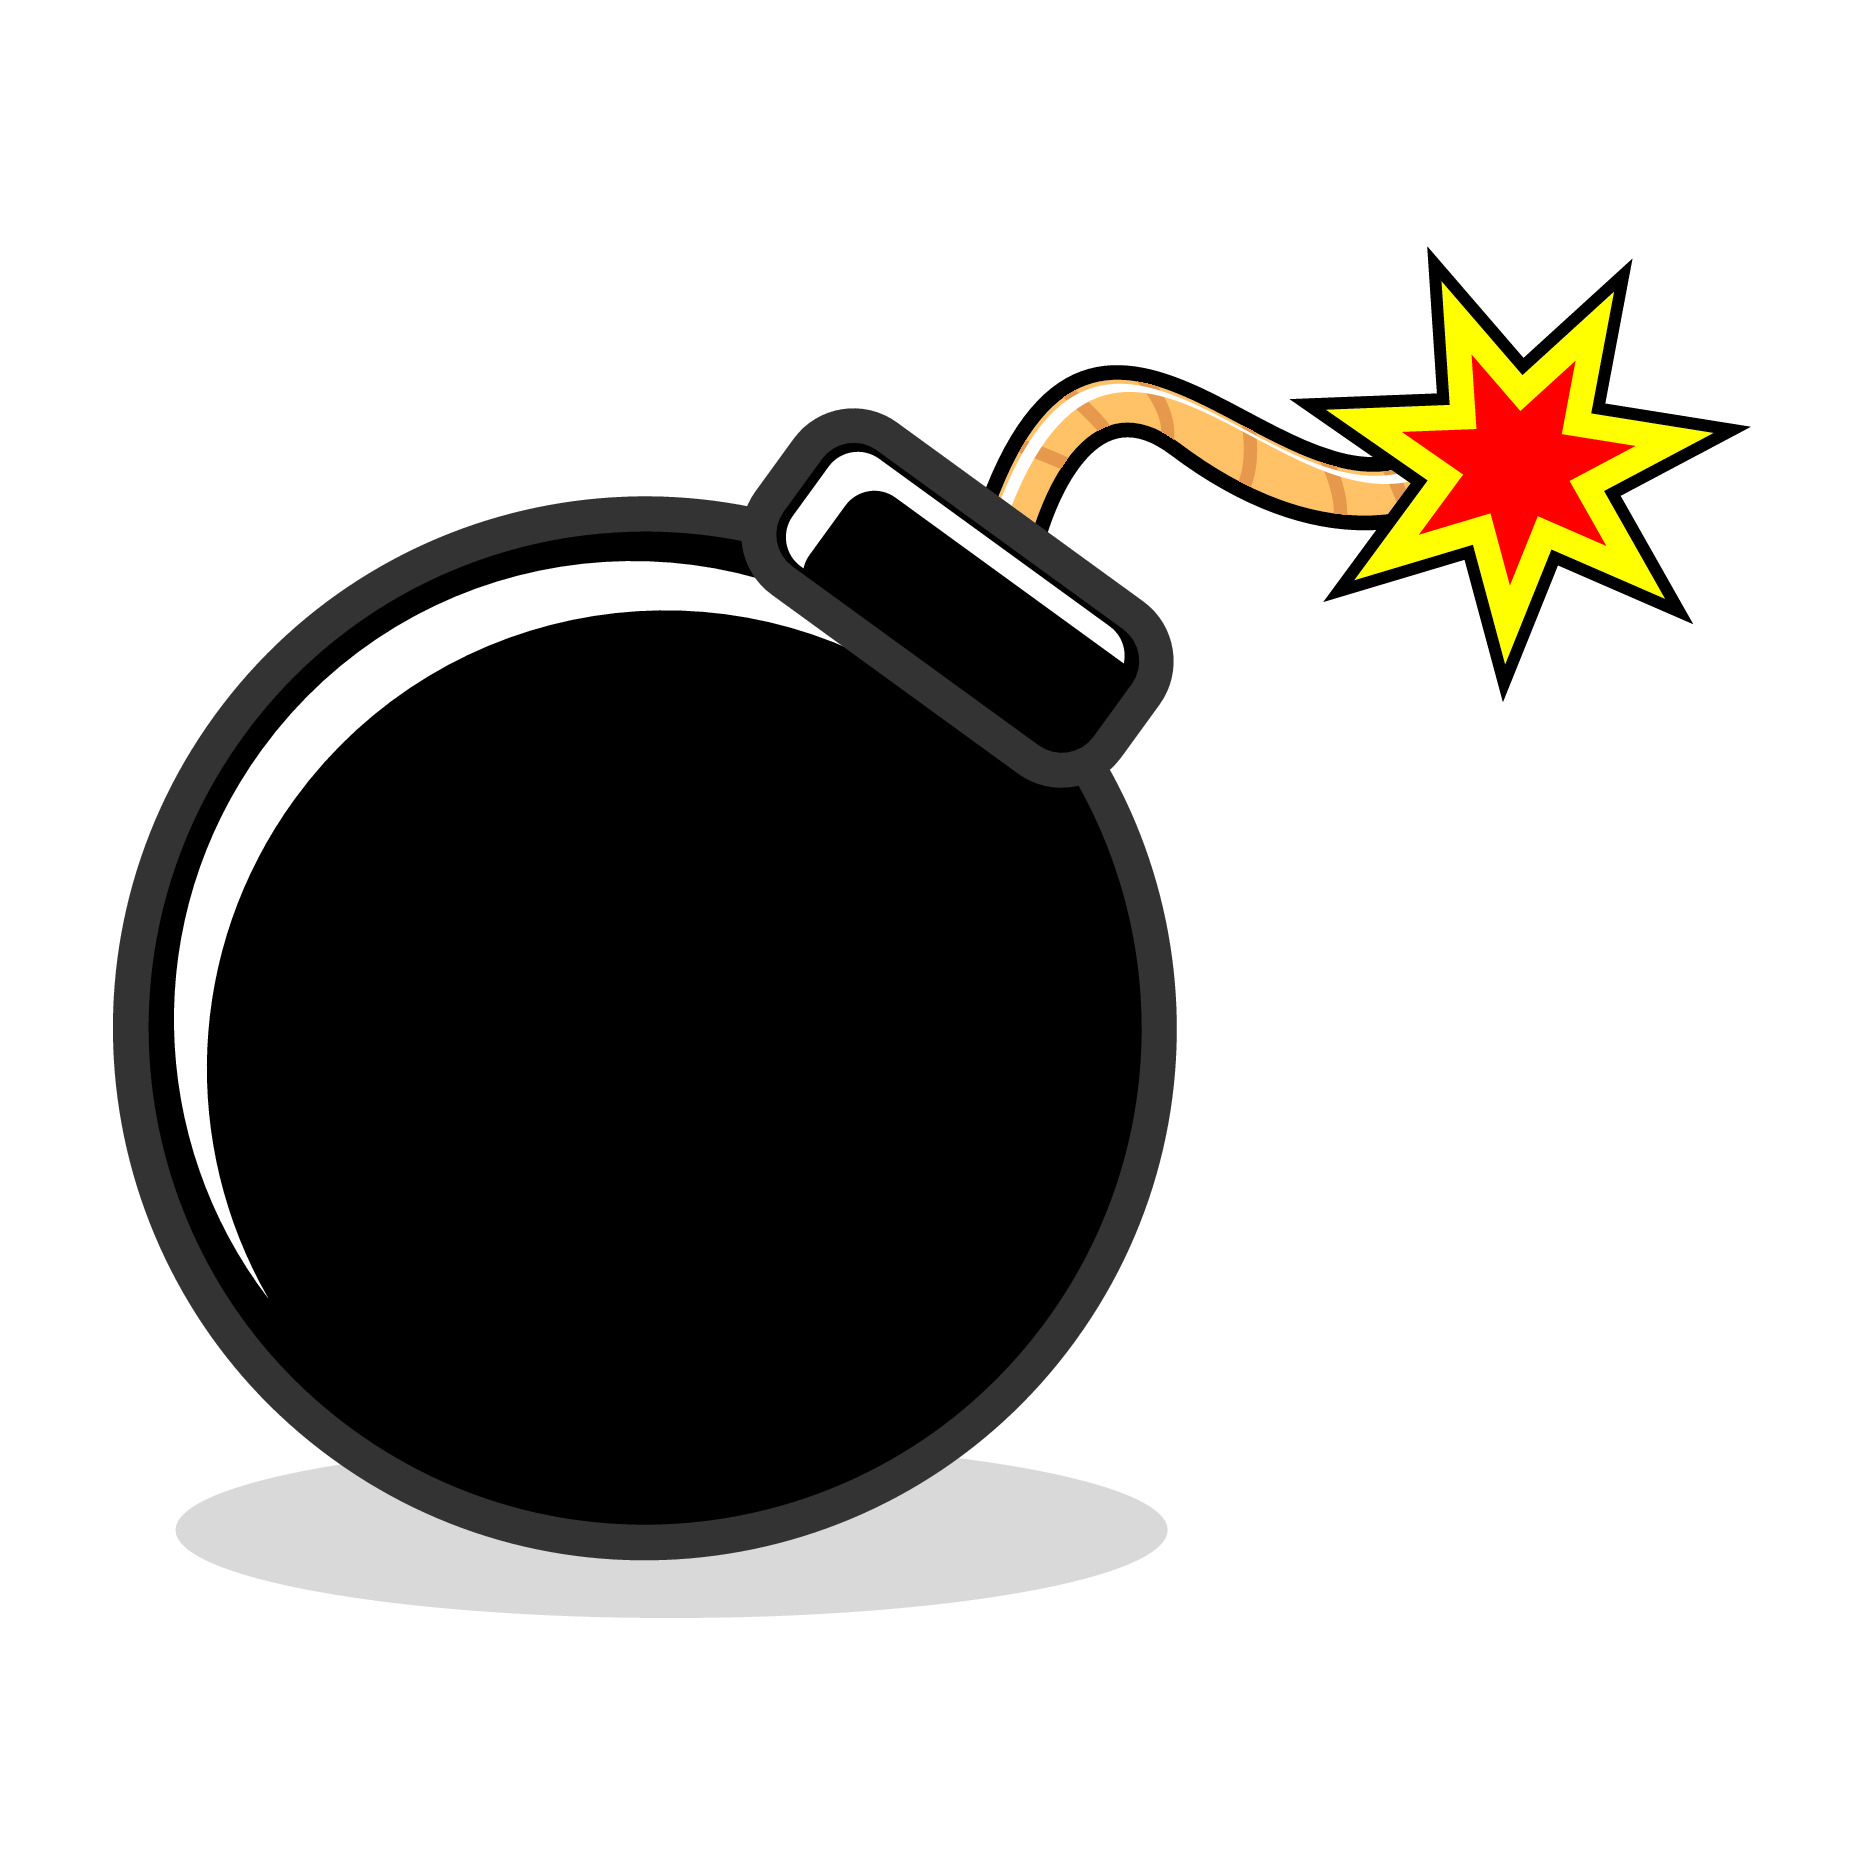 Bomb clipart ordinance. U s drops kzwa